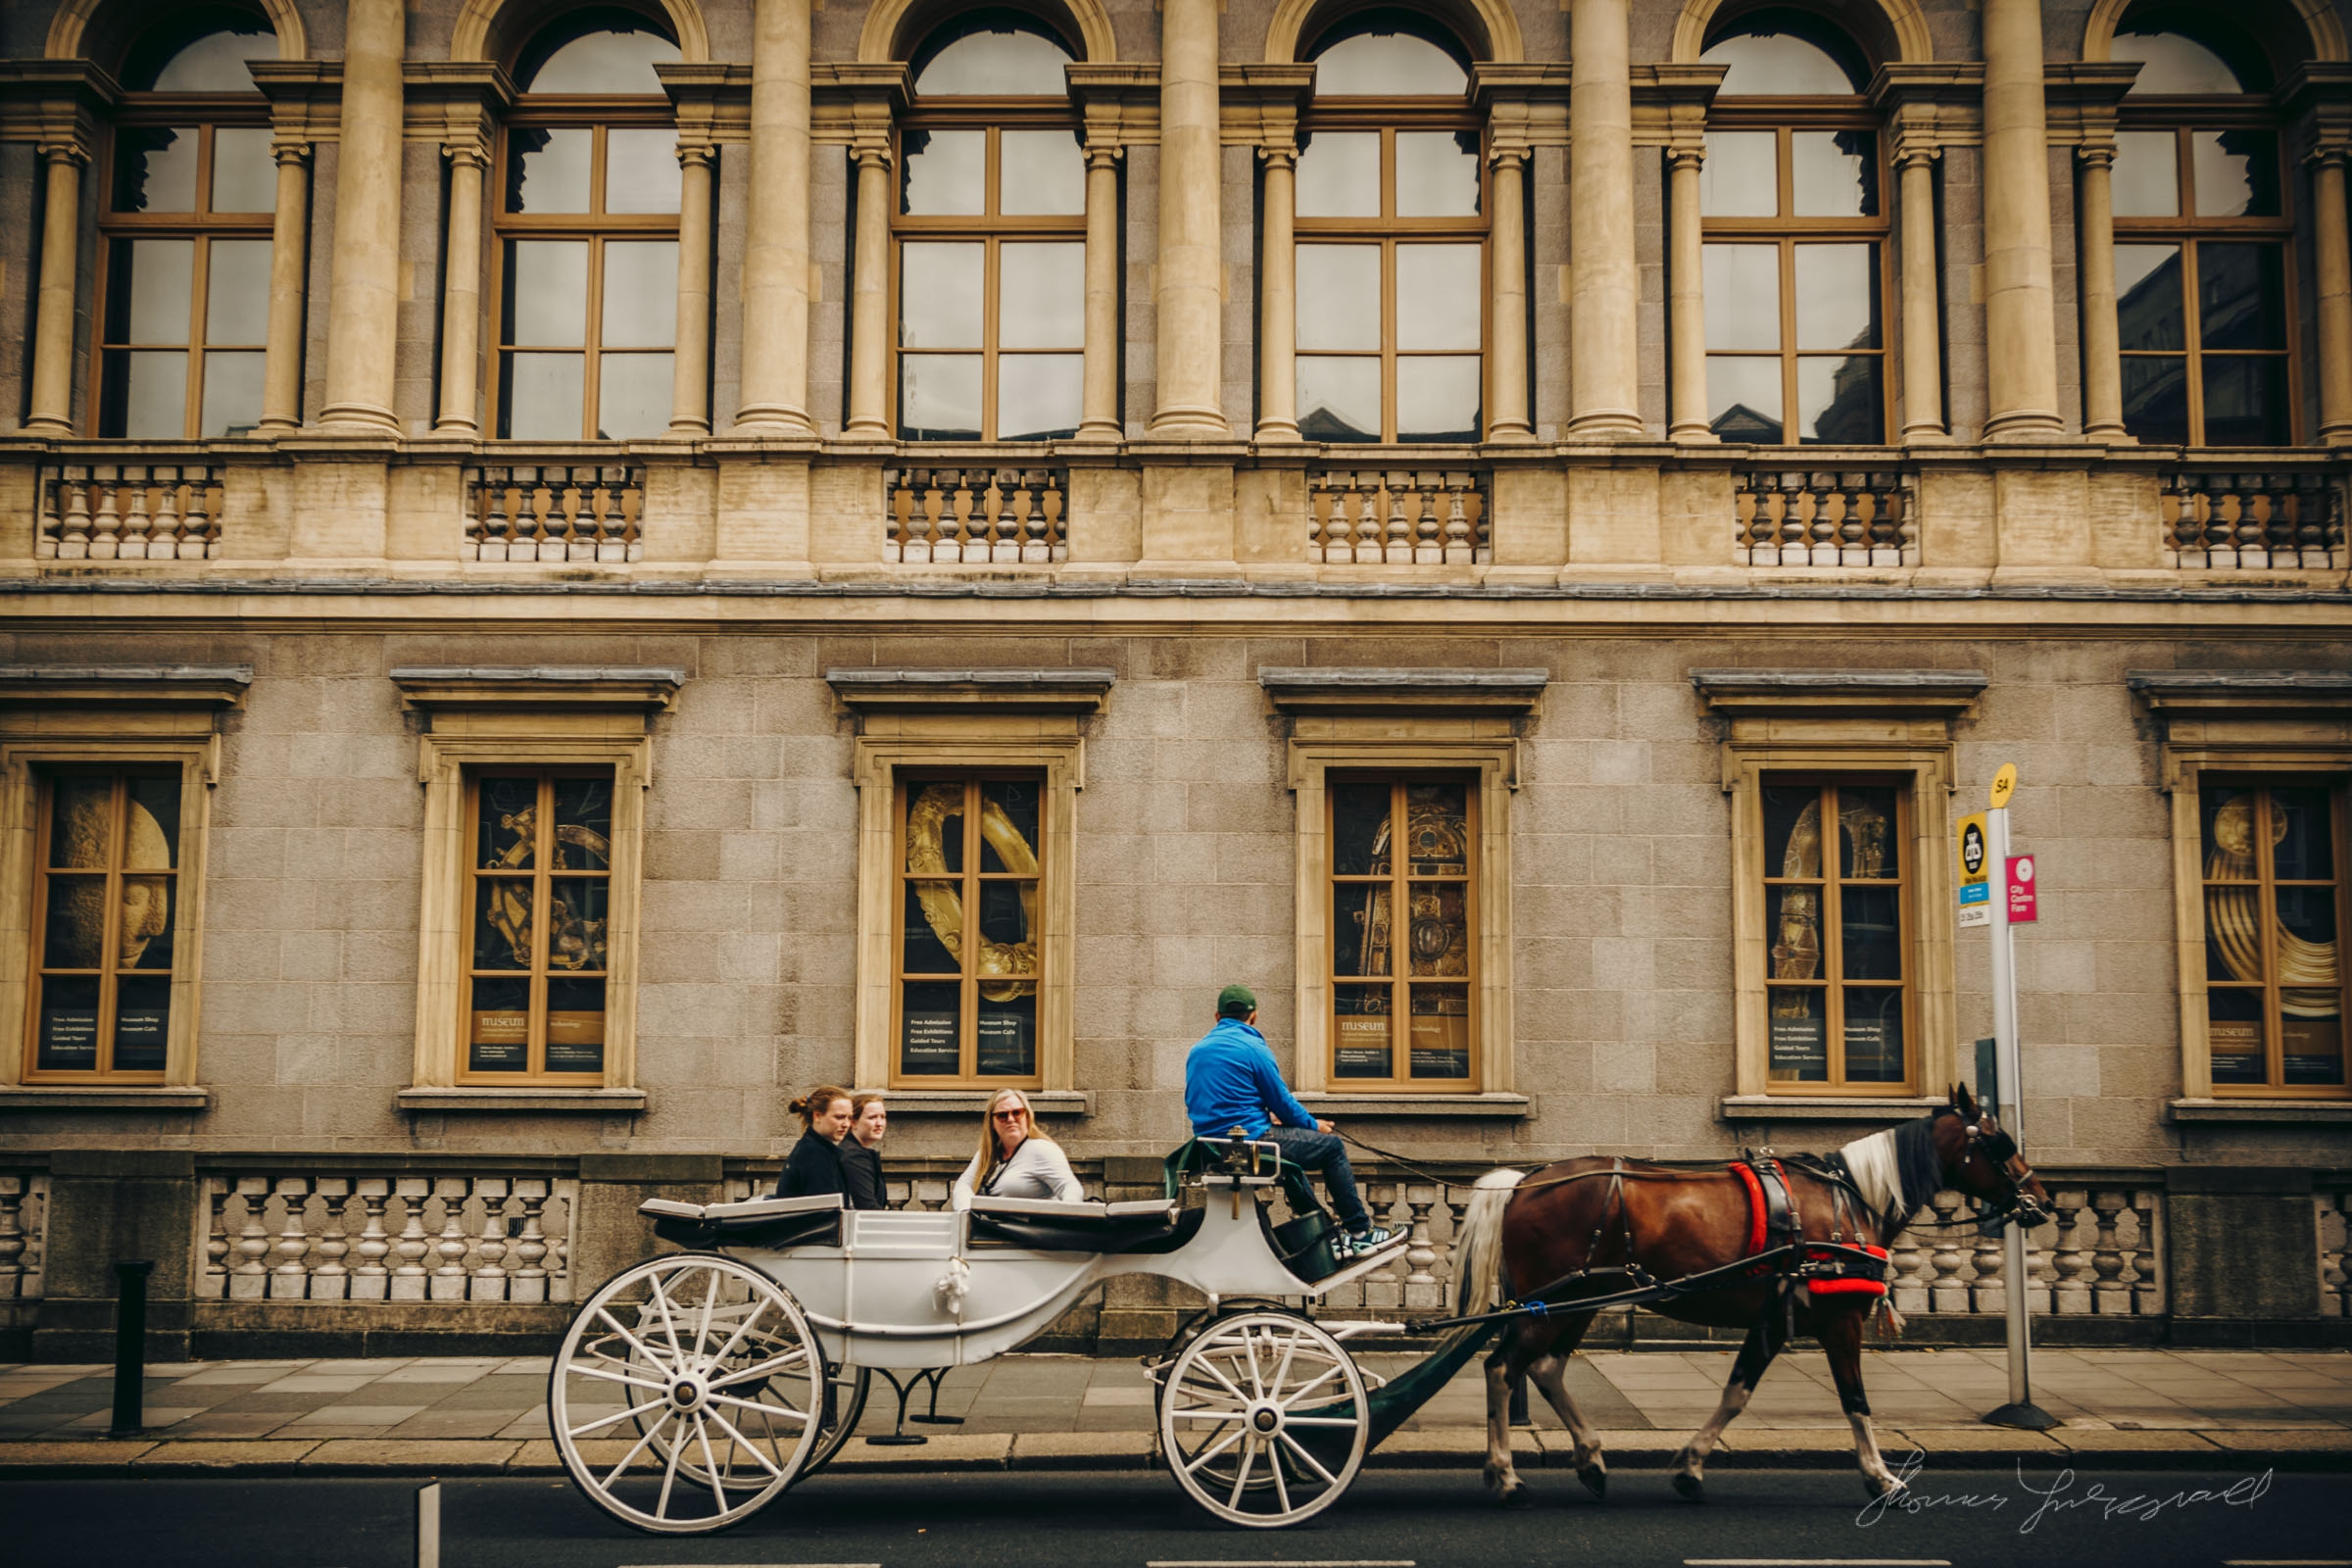 Horse and Carriage from the Streets of Dublin